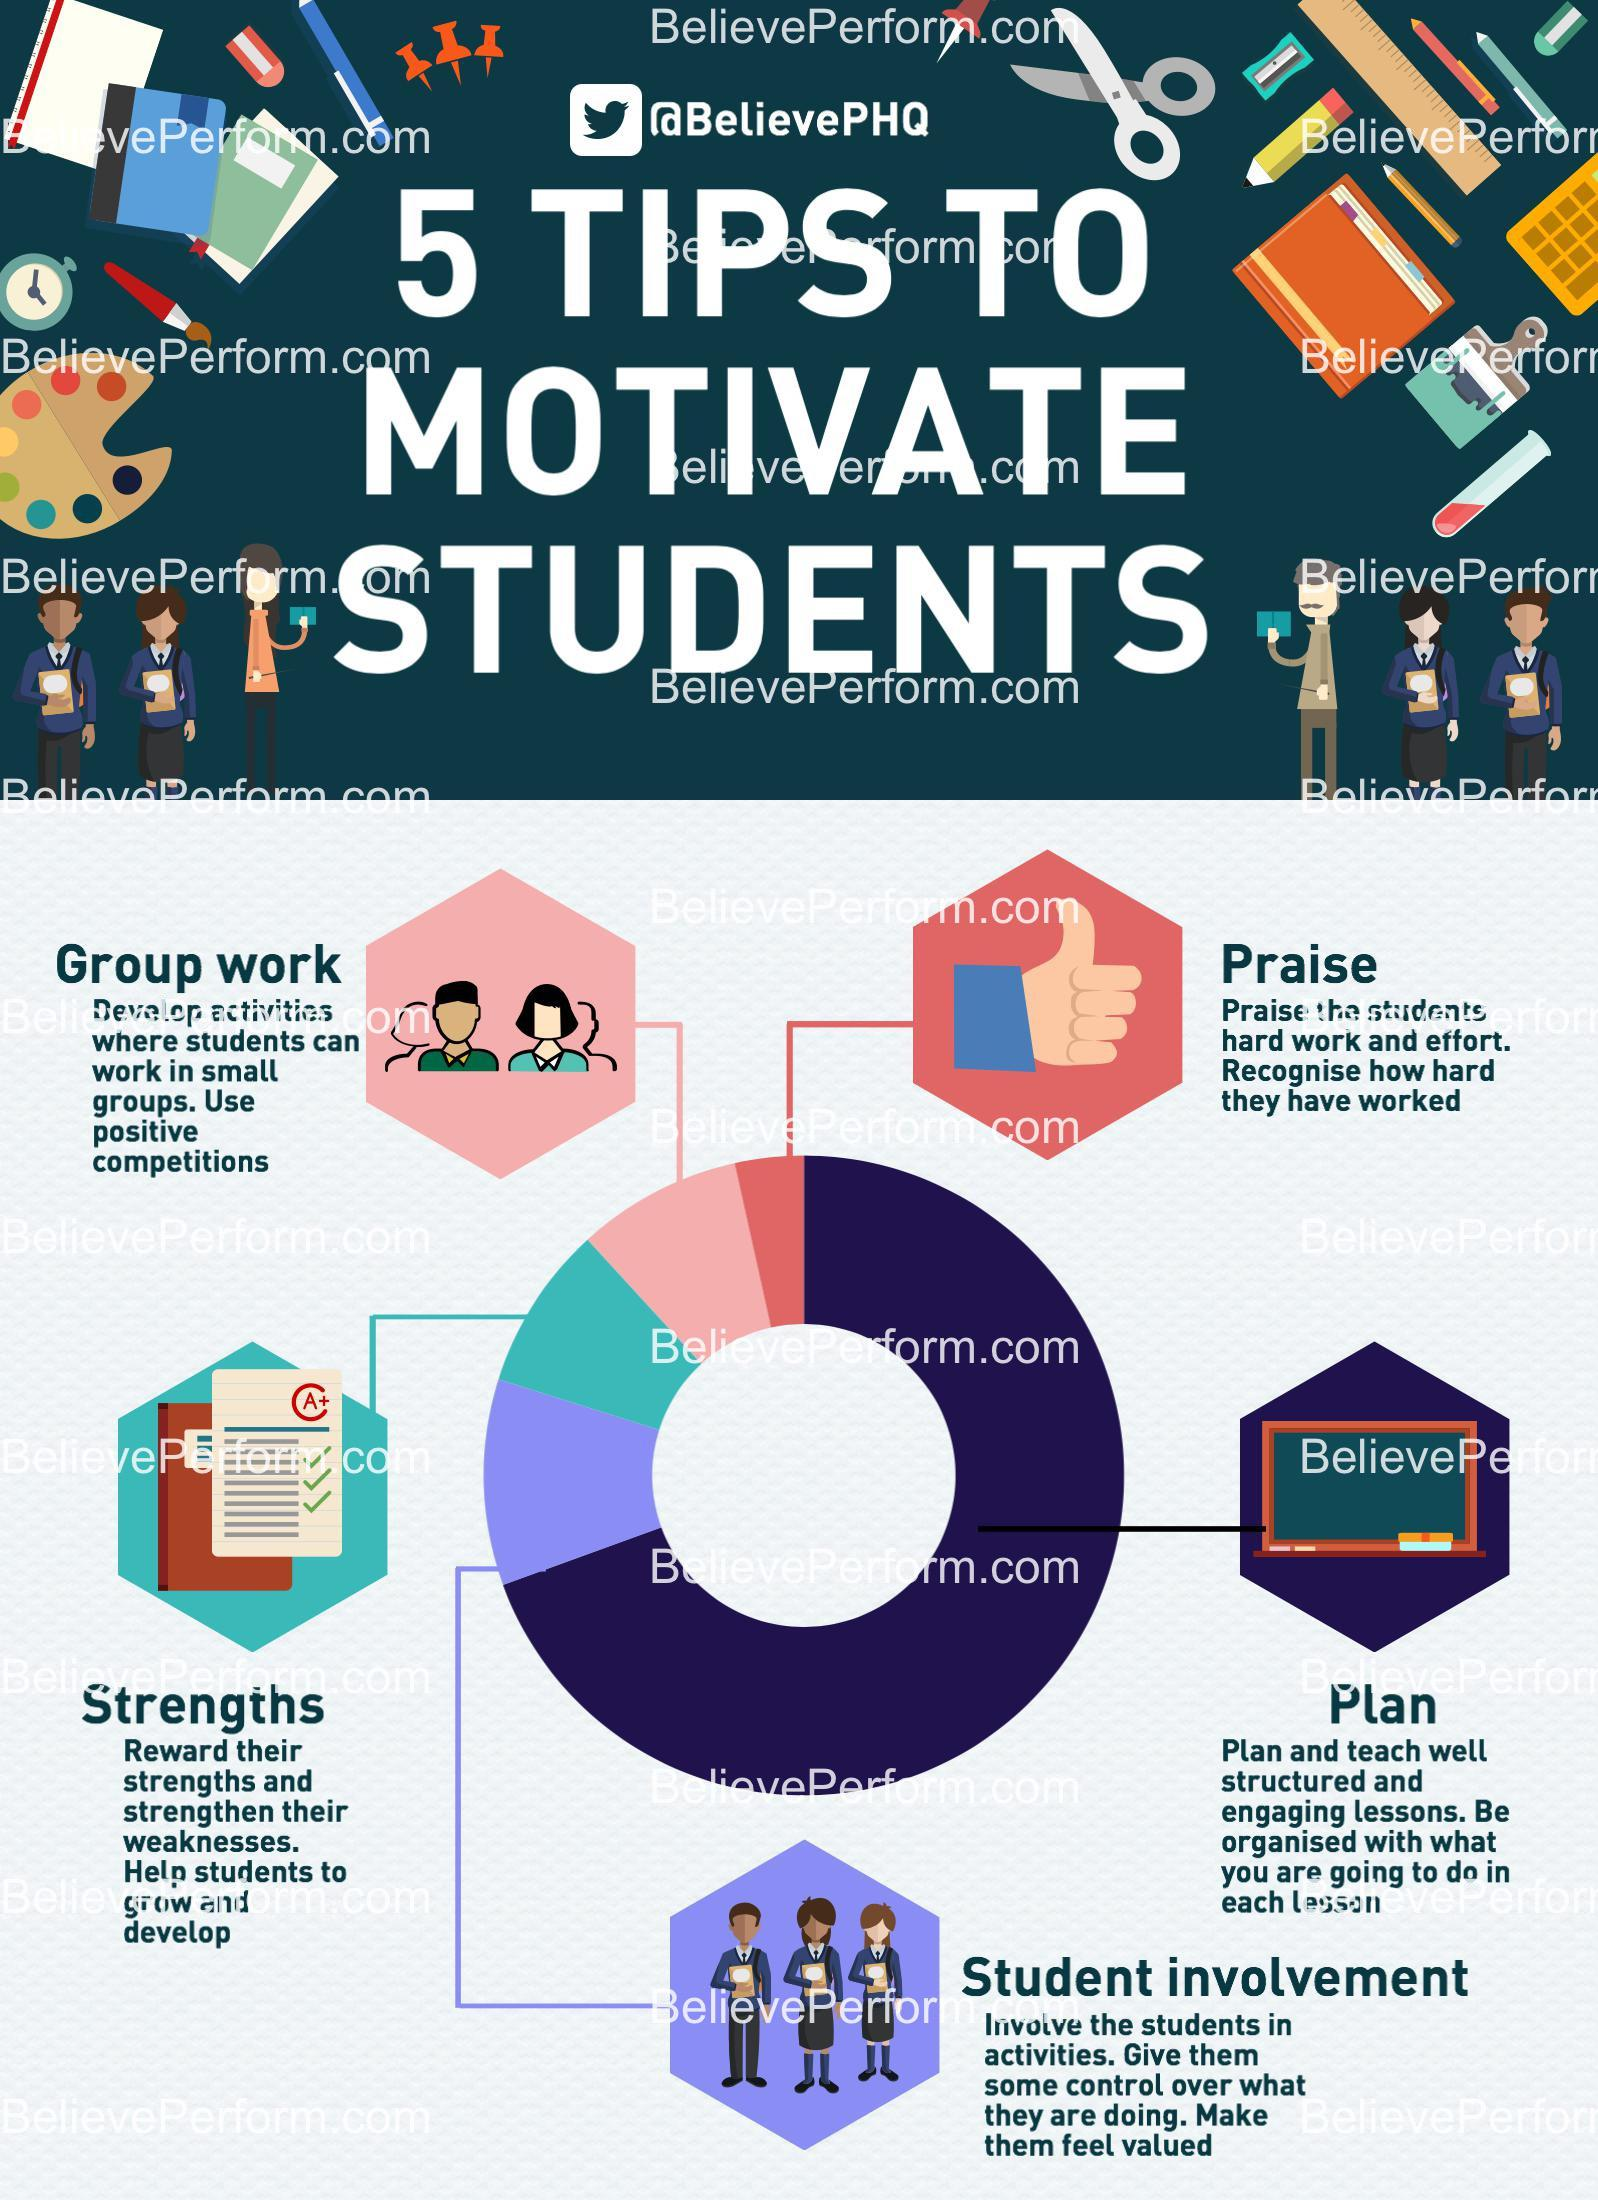 5 tips to motivate students